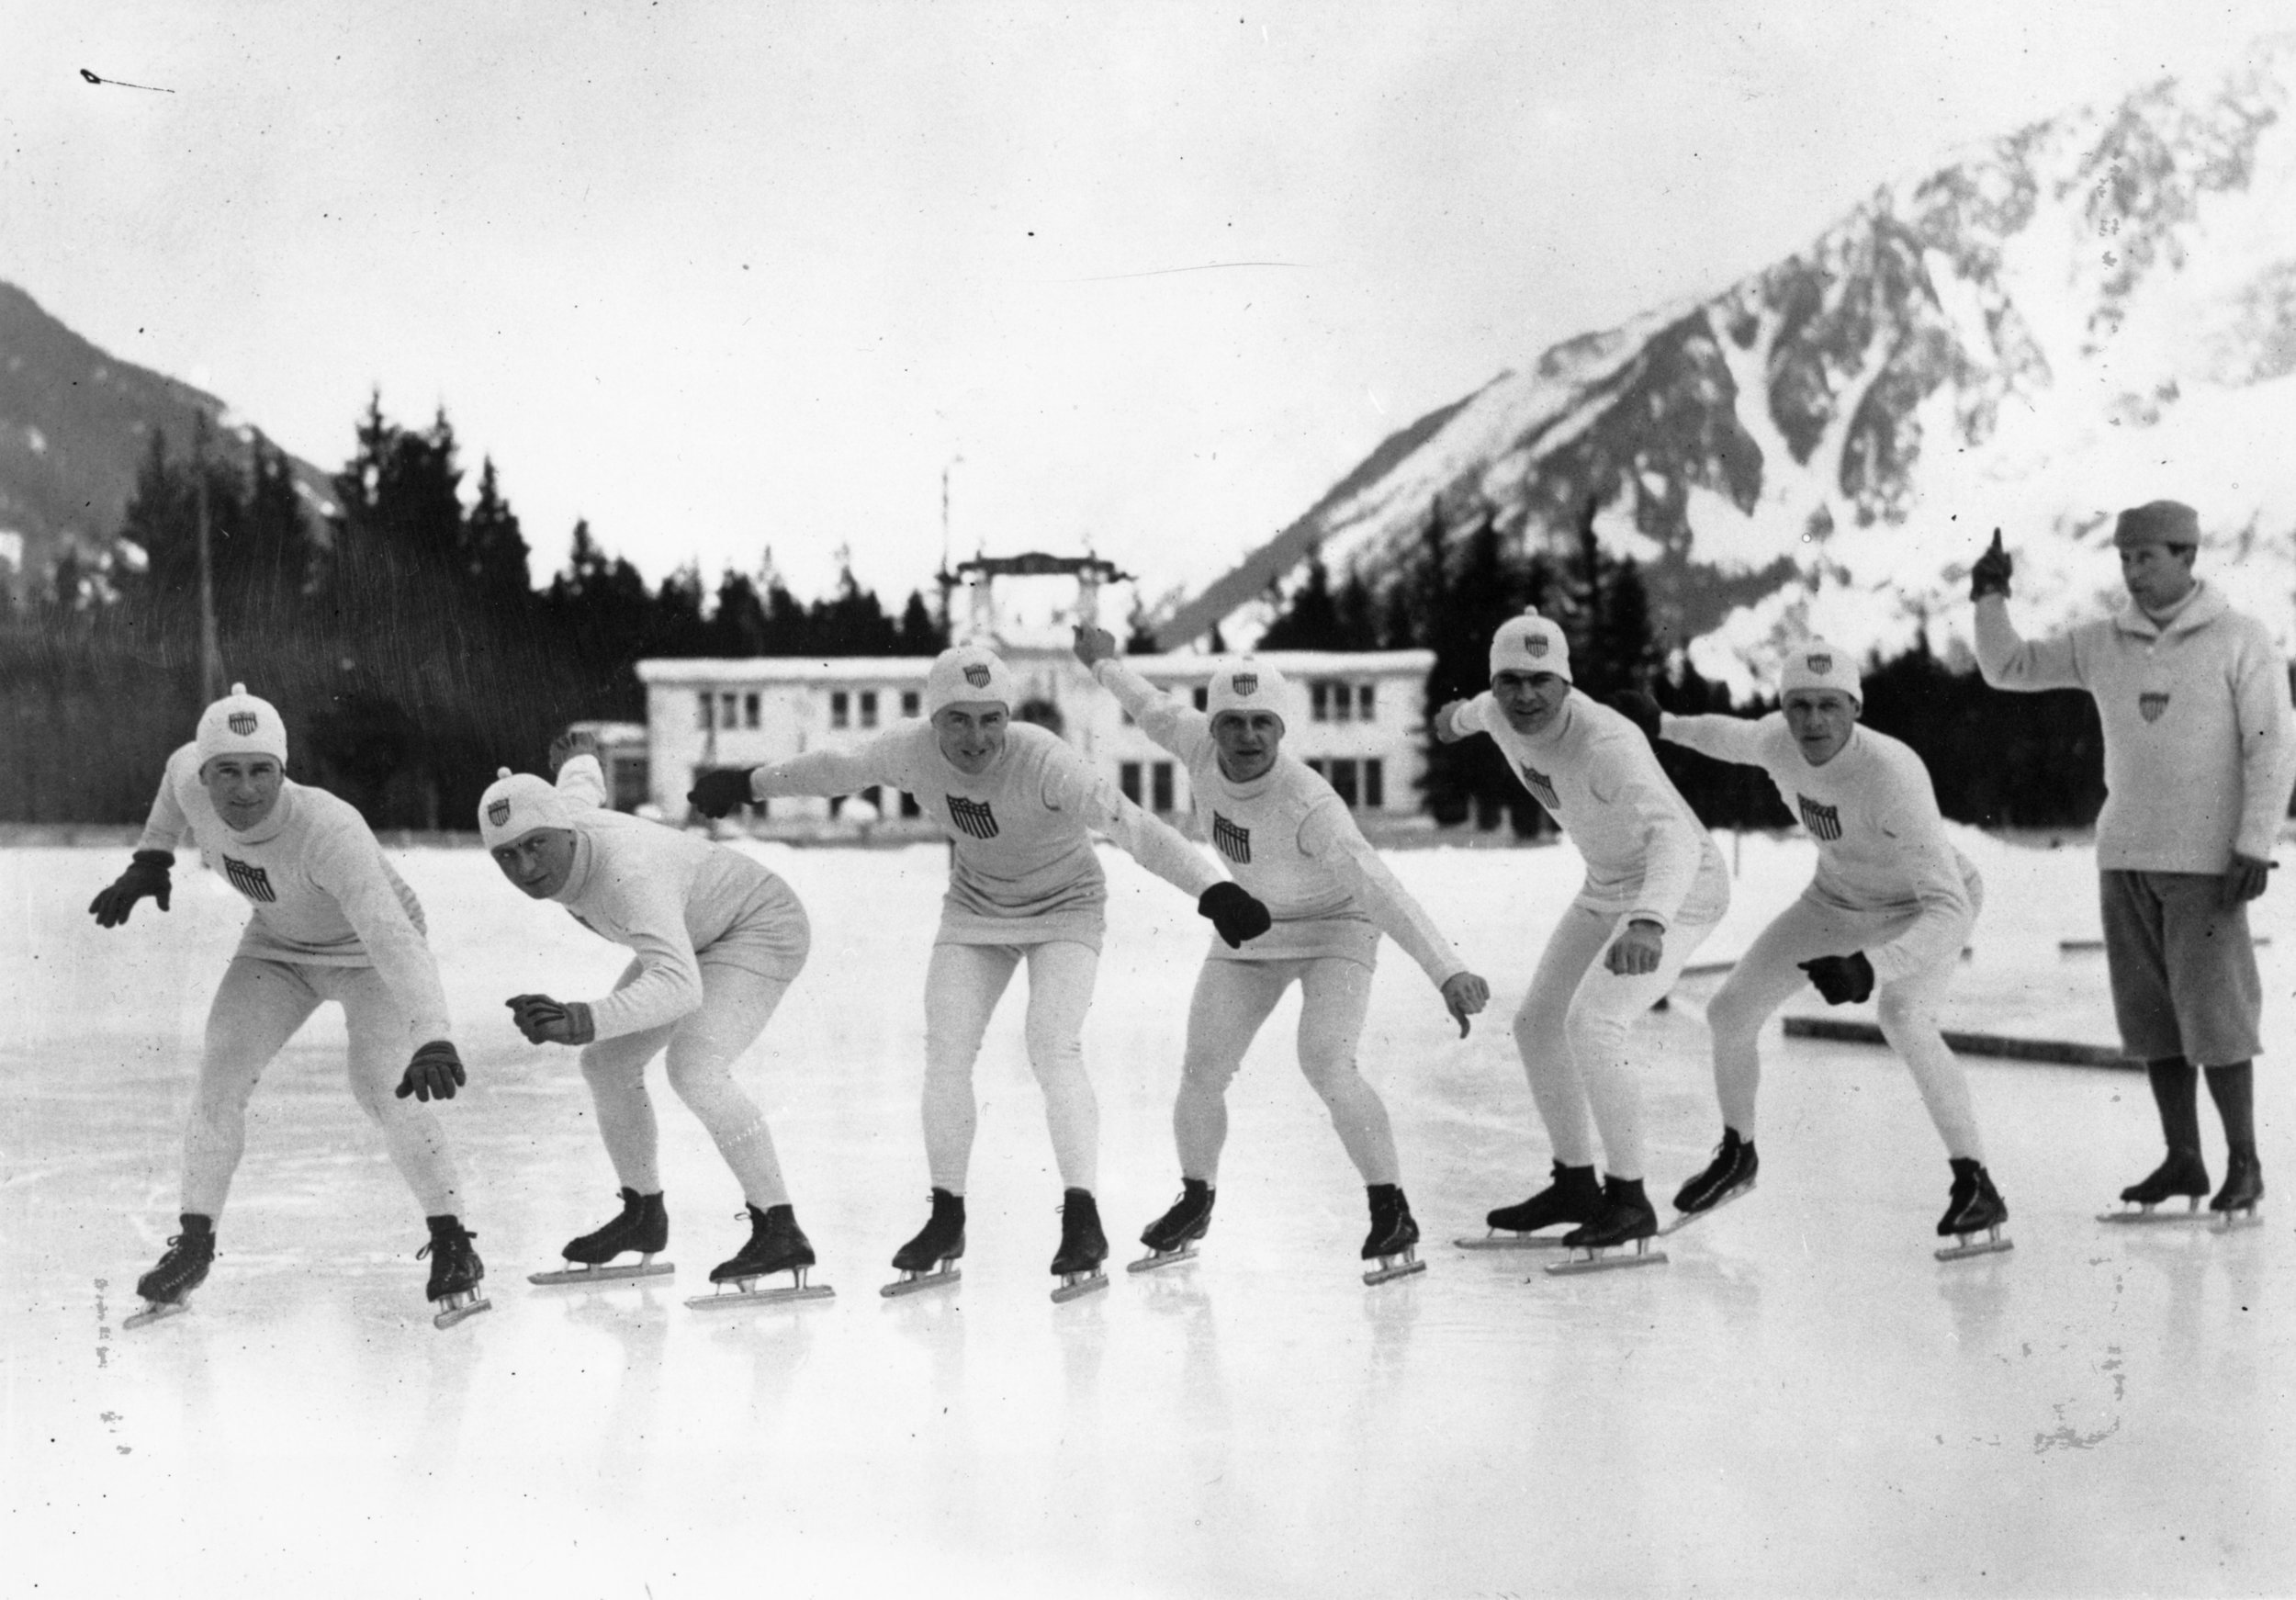 A group of American skaters practicing for the first Winter Olympics at Chamonix, 1924 ((Photo by George Rinhart/Corbis via Getty Images